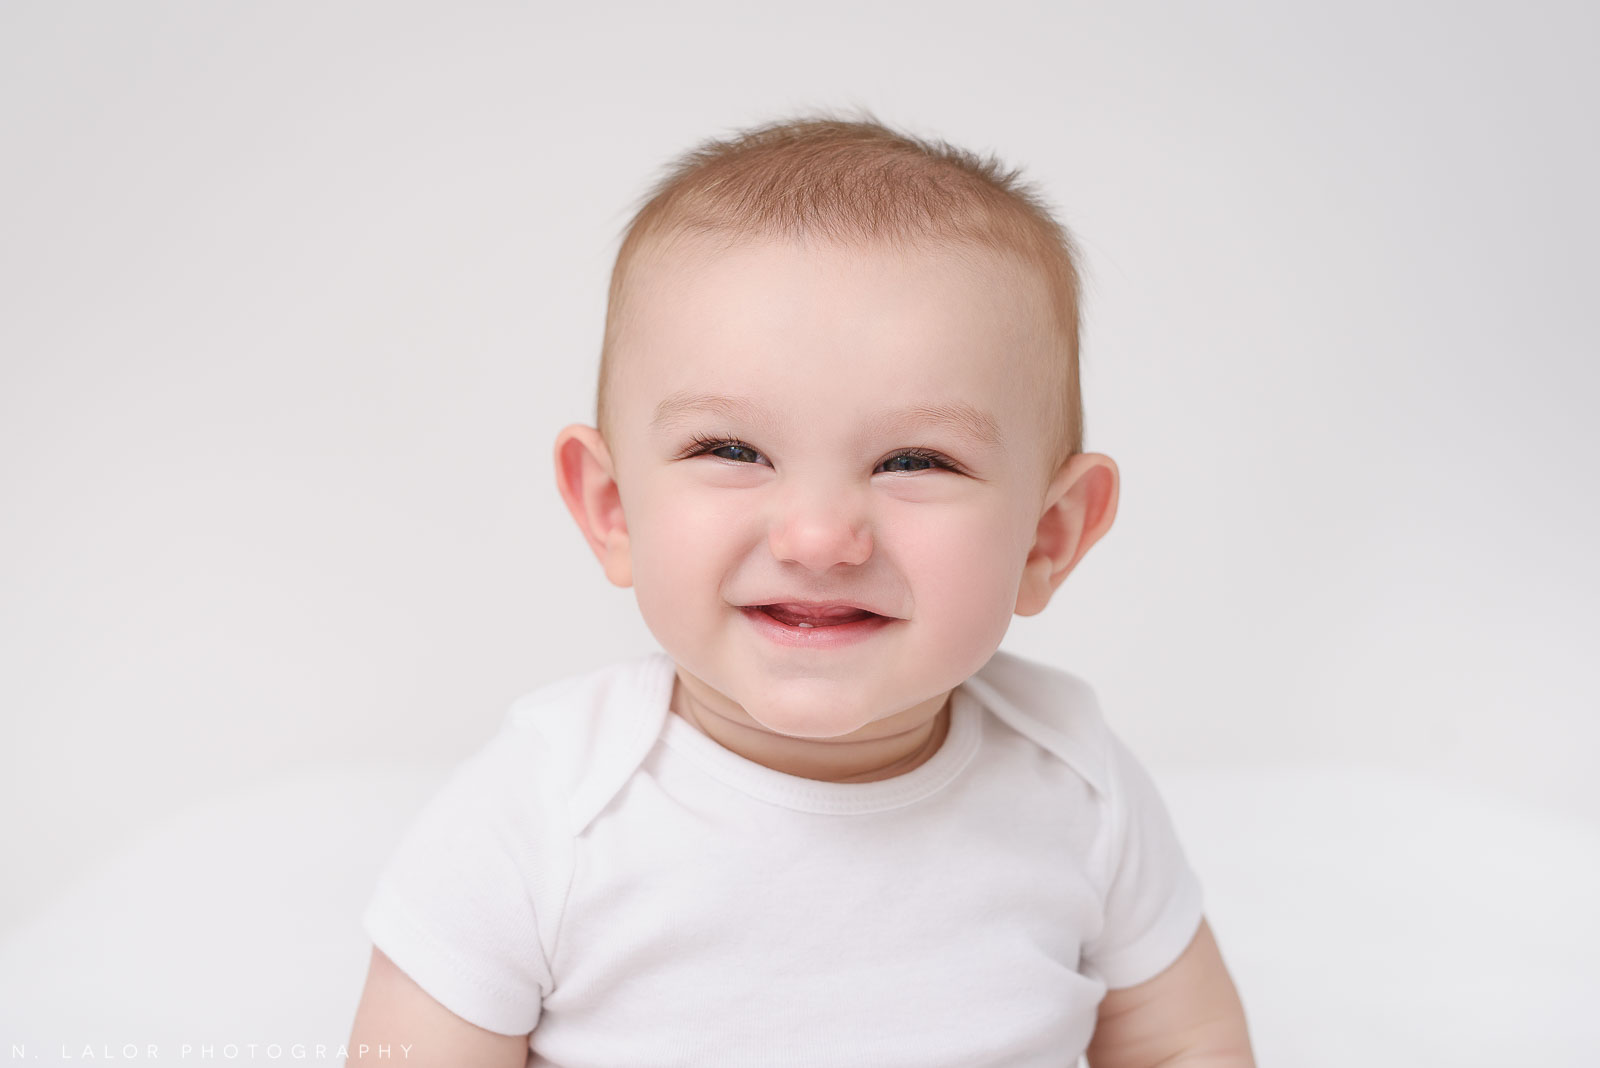 Image of an adorable baby smiling with one little tooth popping through. Studio portrait by N. Lalor Photography in Greenwich, Connecticut.